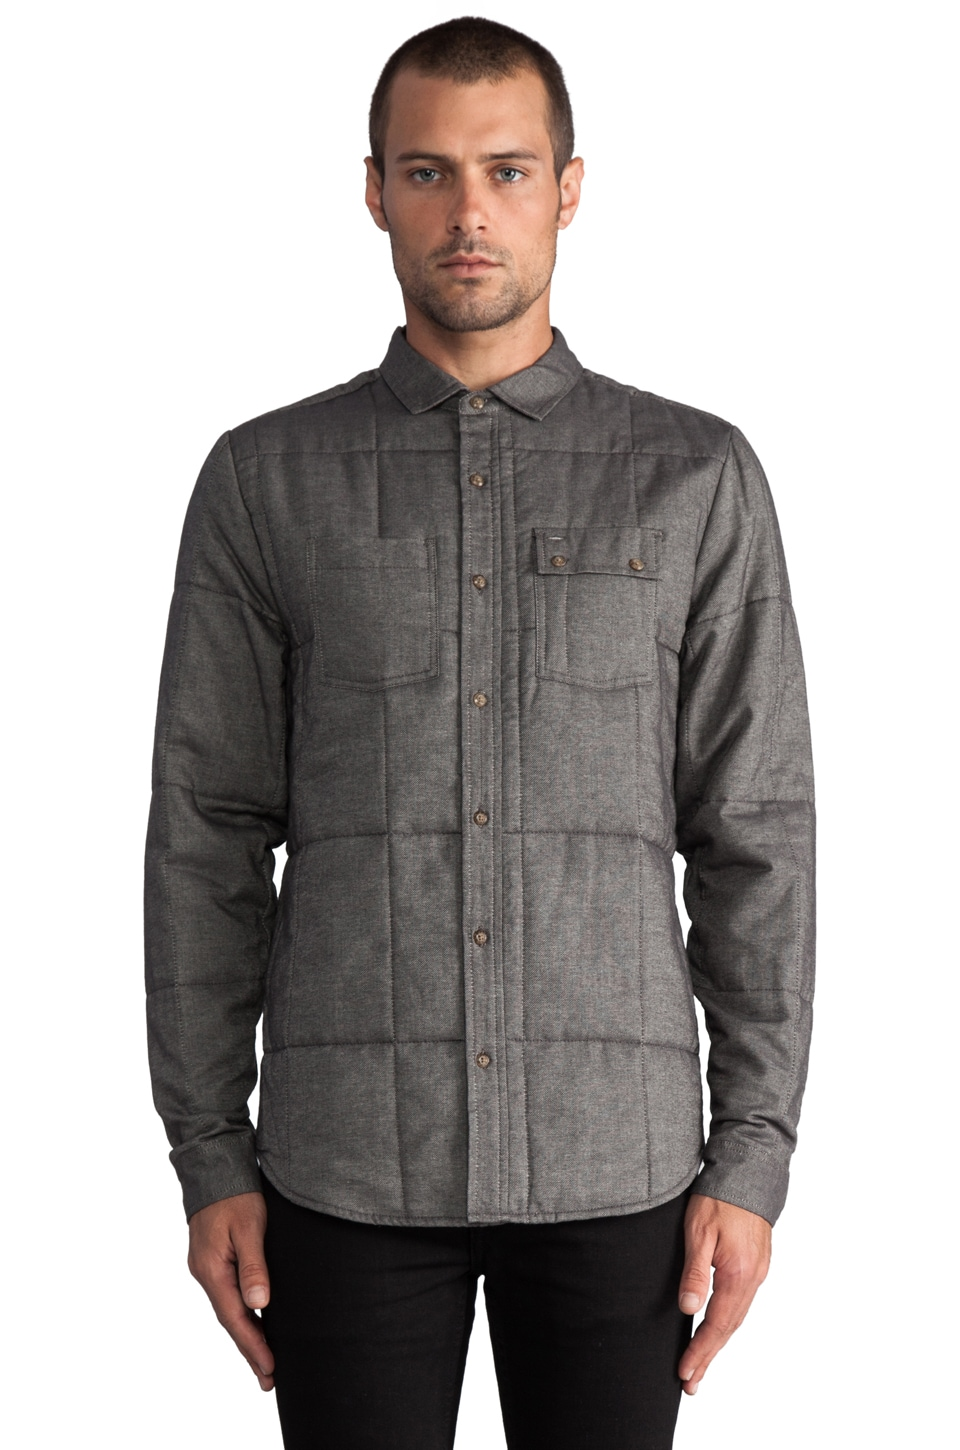 COMUNE Arnold Quilted L/S Button Down Shirt Jacket in Charcoal